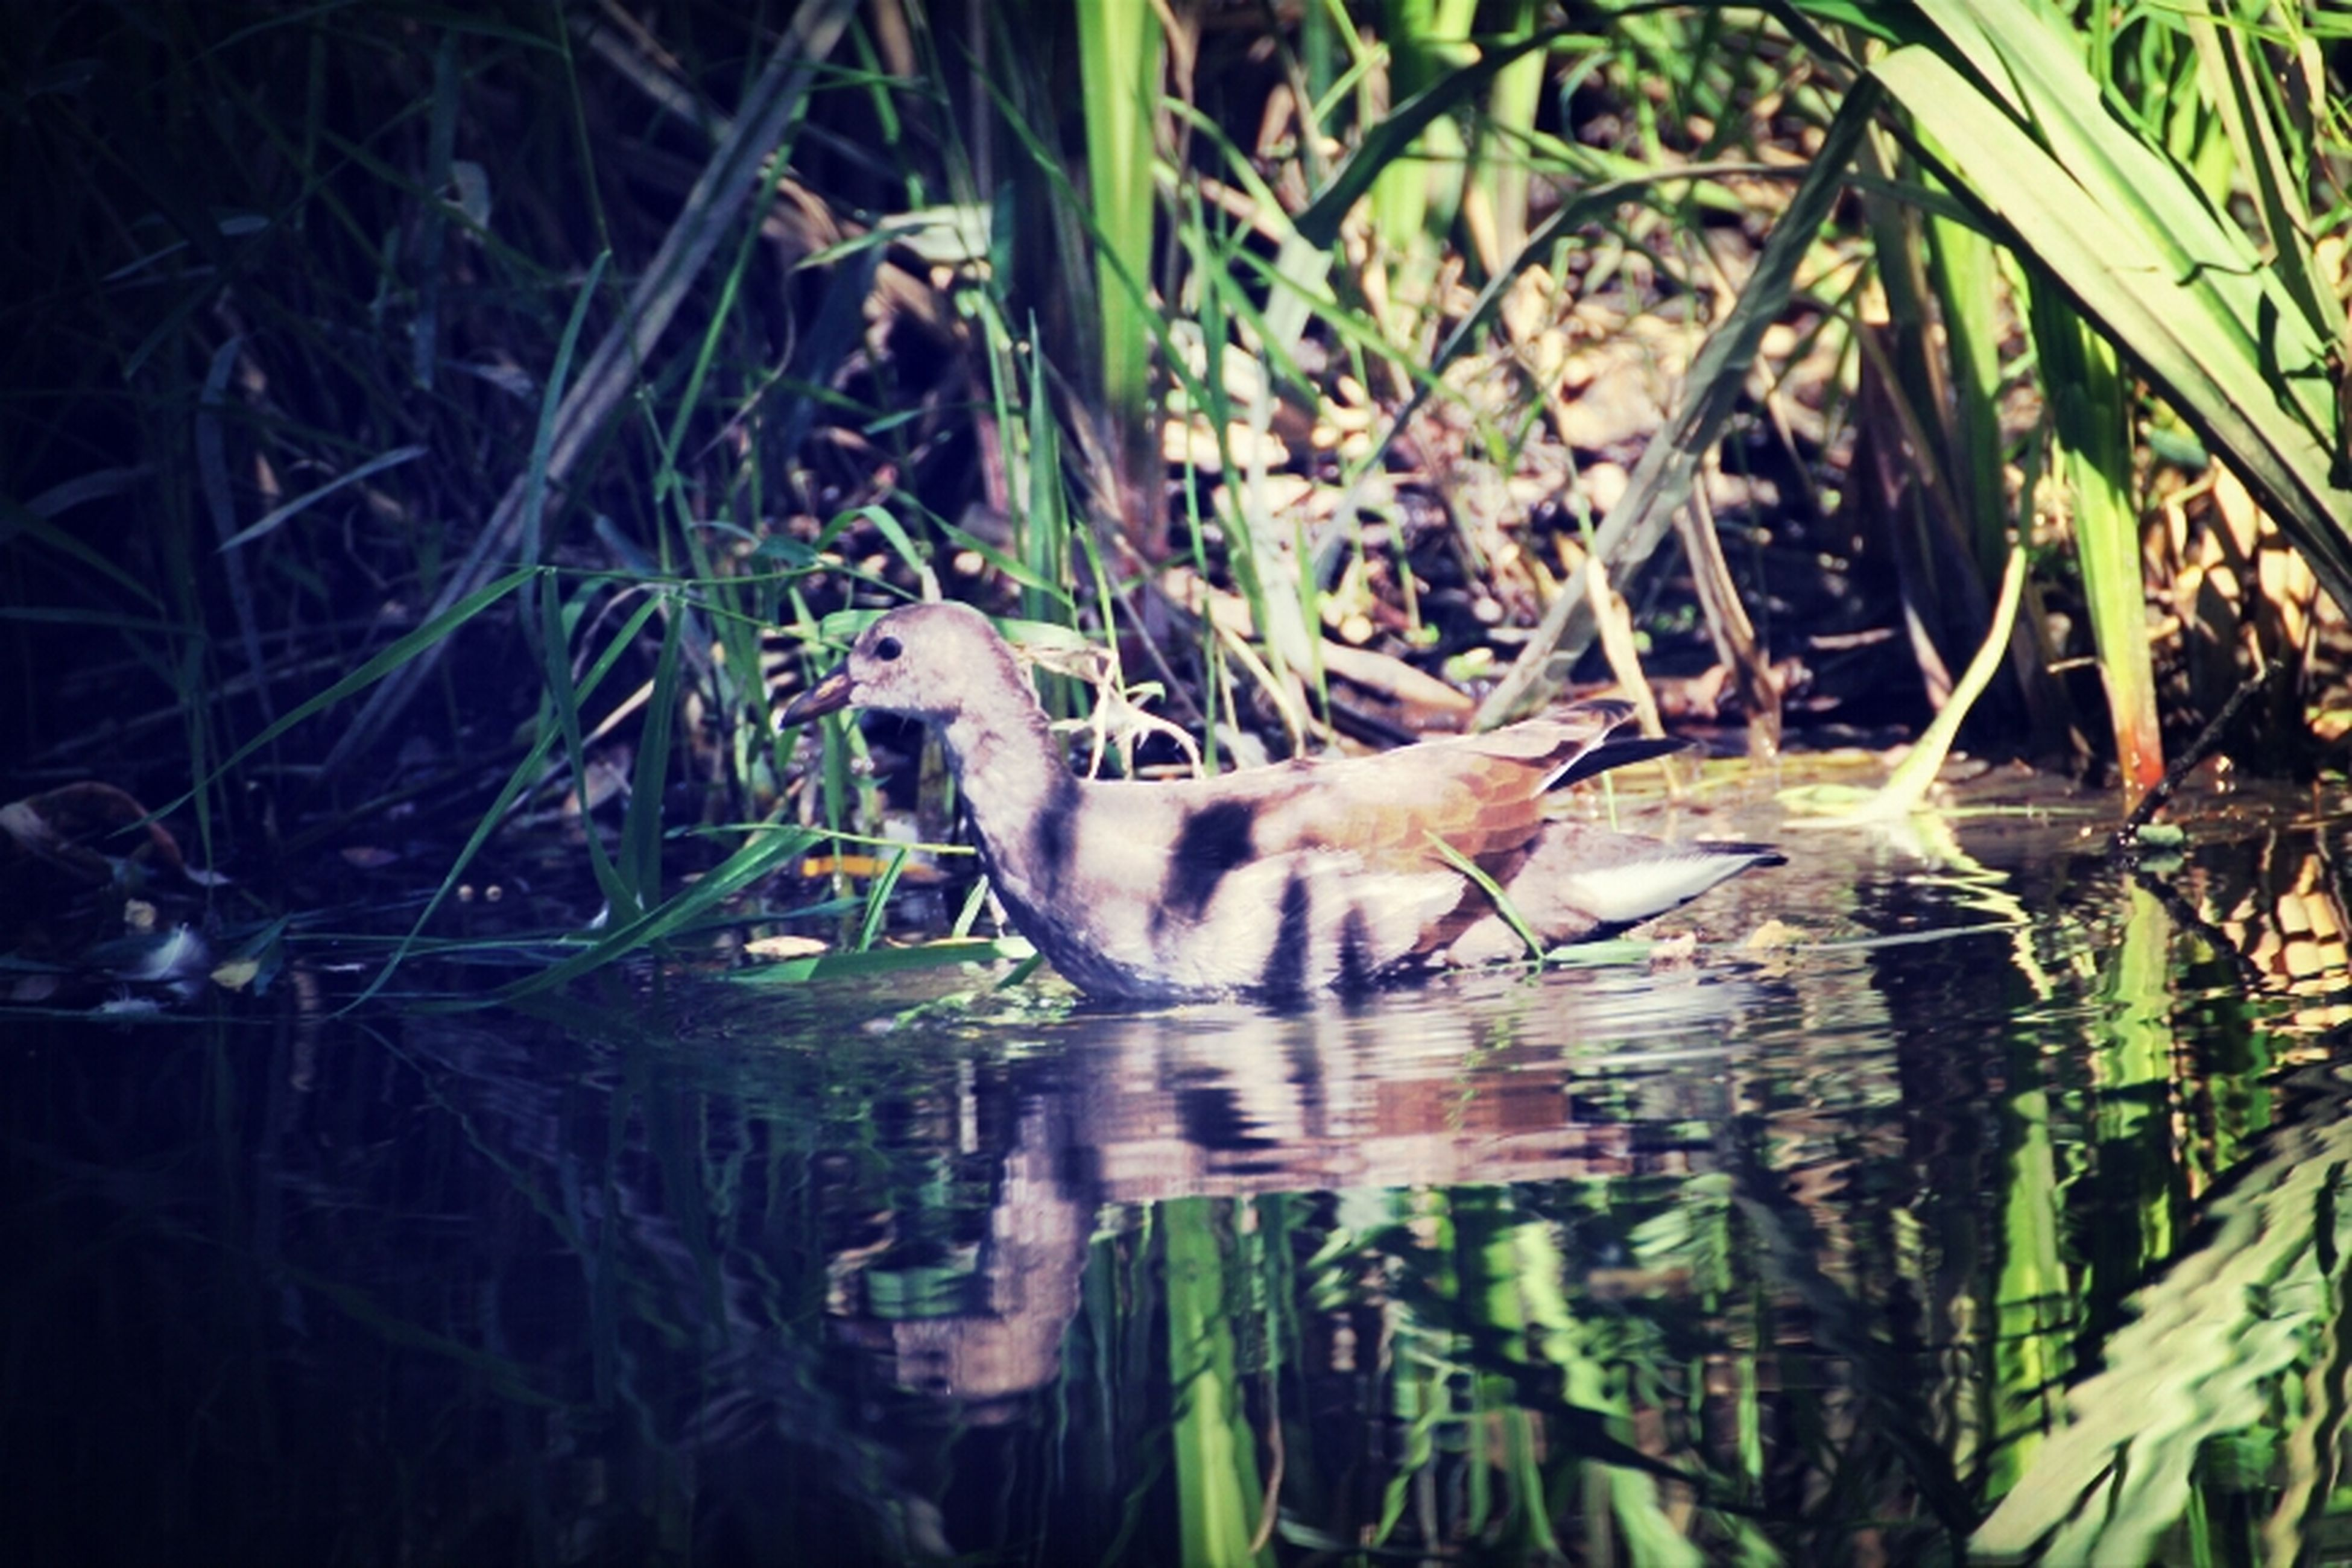 animal themes, animals in the wild, water, wildlife, lake, reflection, one animal, bird, swimming, duck, nature, waterfront, plant, young animal, high angle view, outdoors, pond, no people, day, two animals